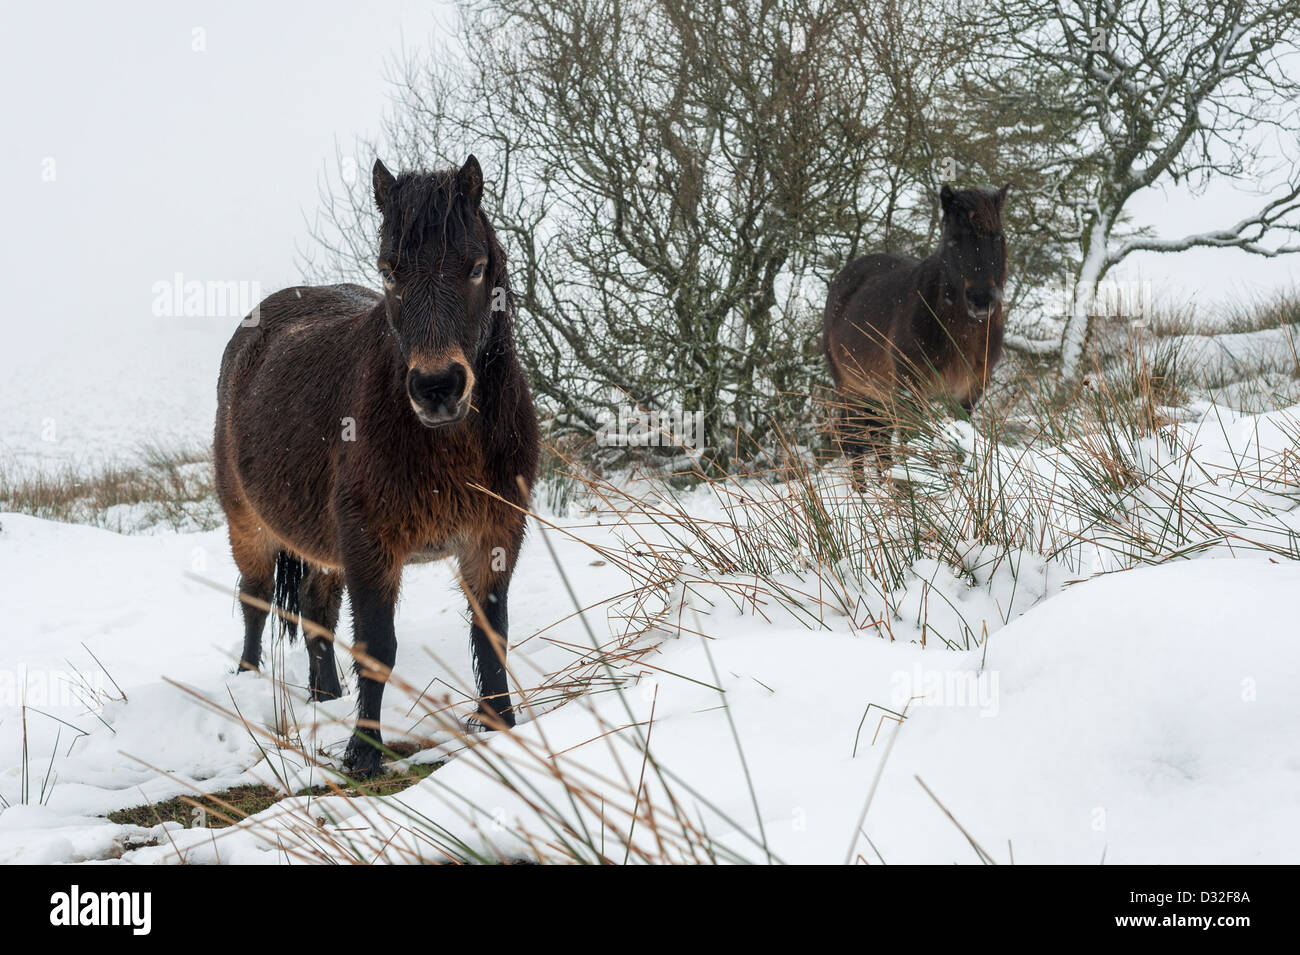 Dartmoor ponies in snowy winter weather on Dartmoor near the Warren House Inn. - Stock Image